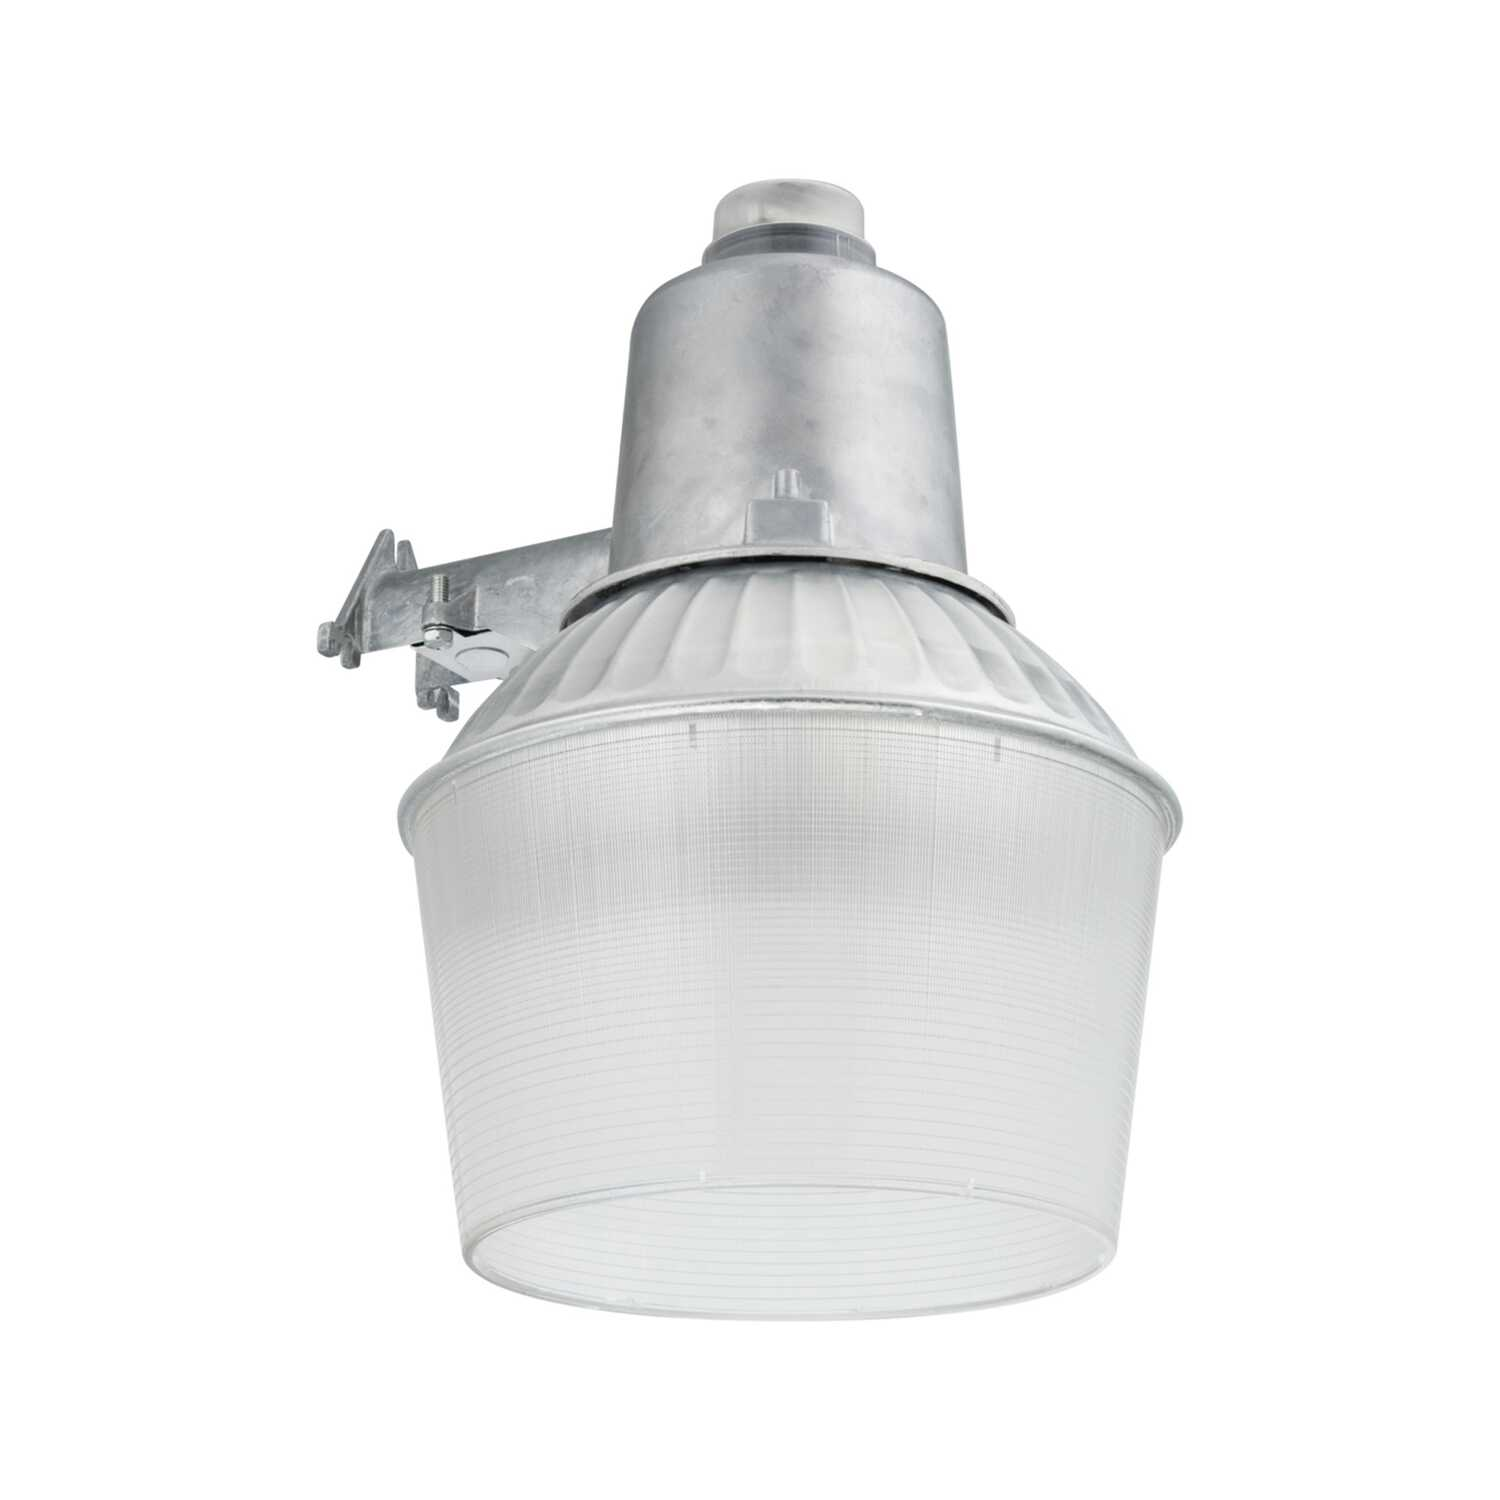 Lithonia Lighting  Dusk to Dawn  Hardwired  Metal Halide  Silver  Area Light